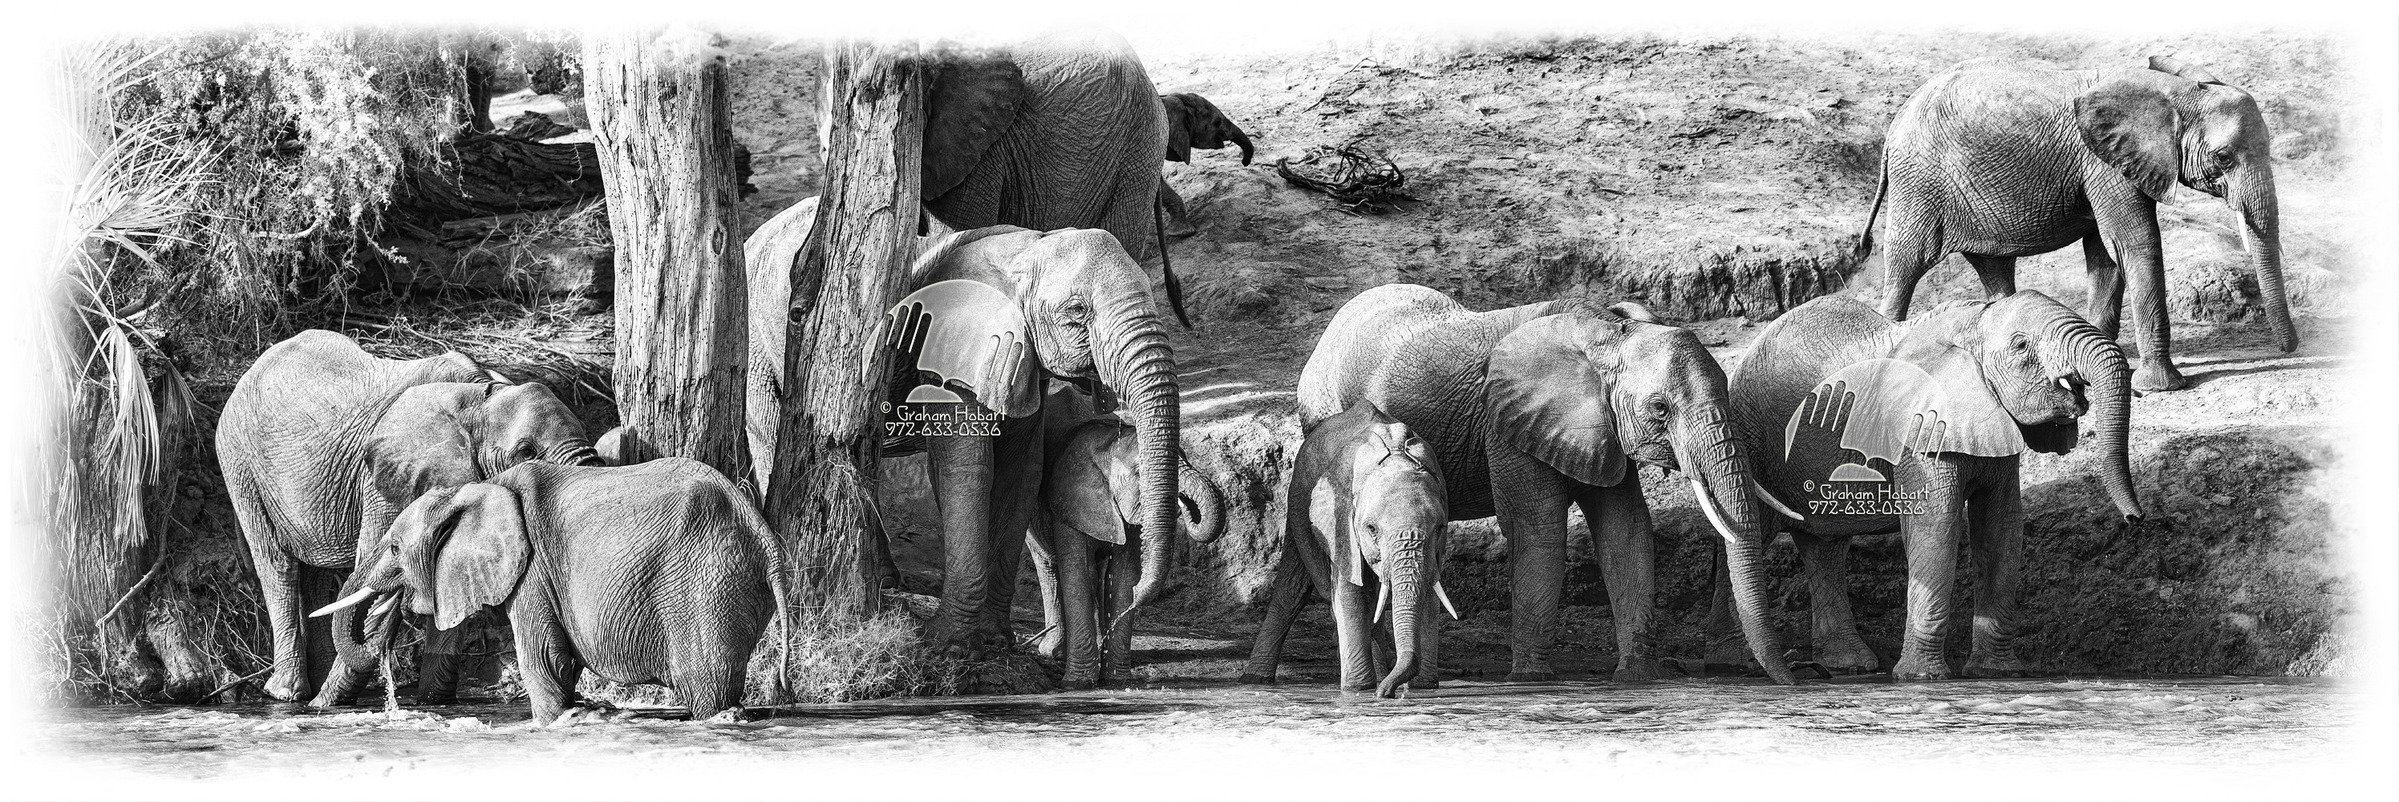 Elephants Drinking On Bank Of The River Uaso Nyiro #2 (2012) by In a Different Light in Regular Member Gallery